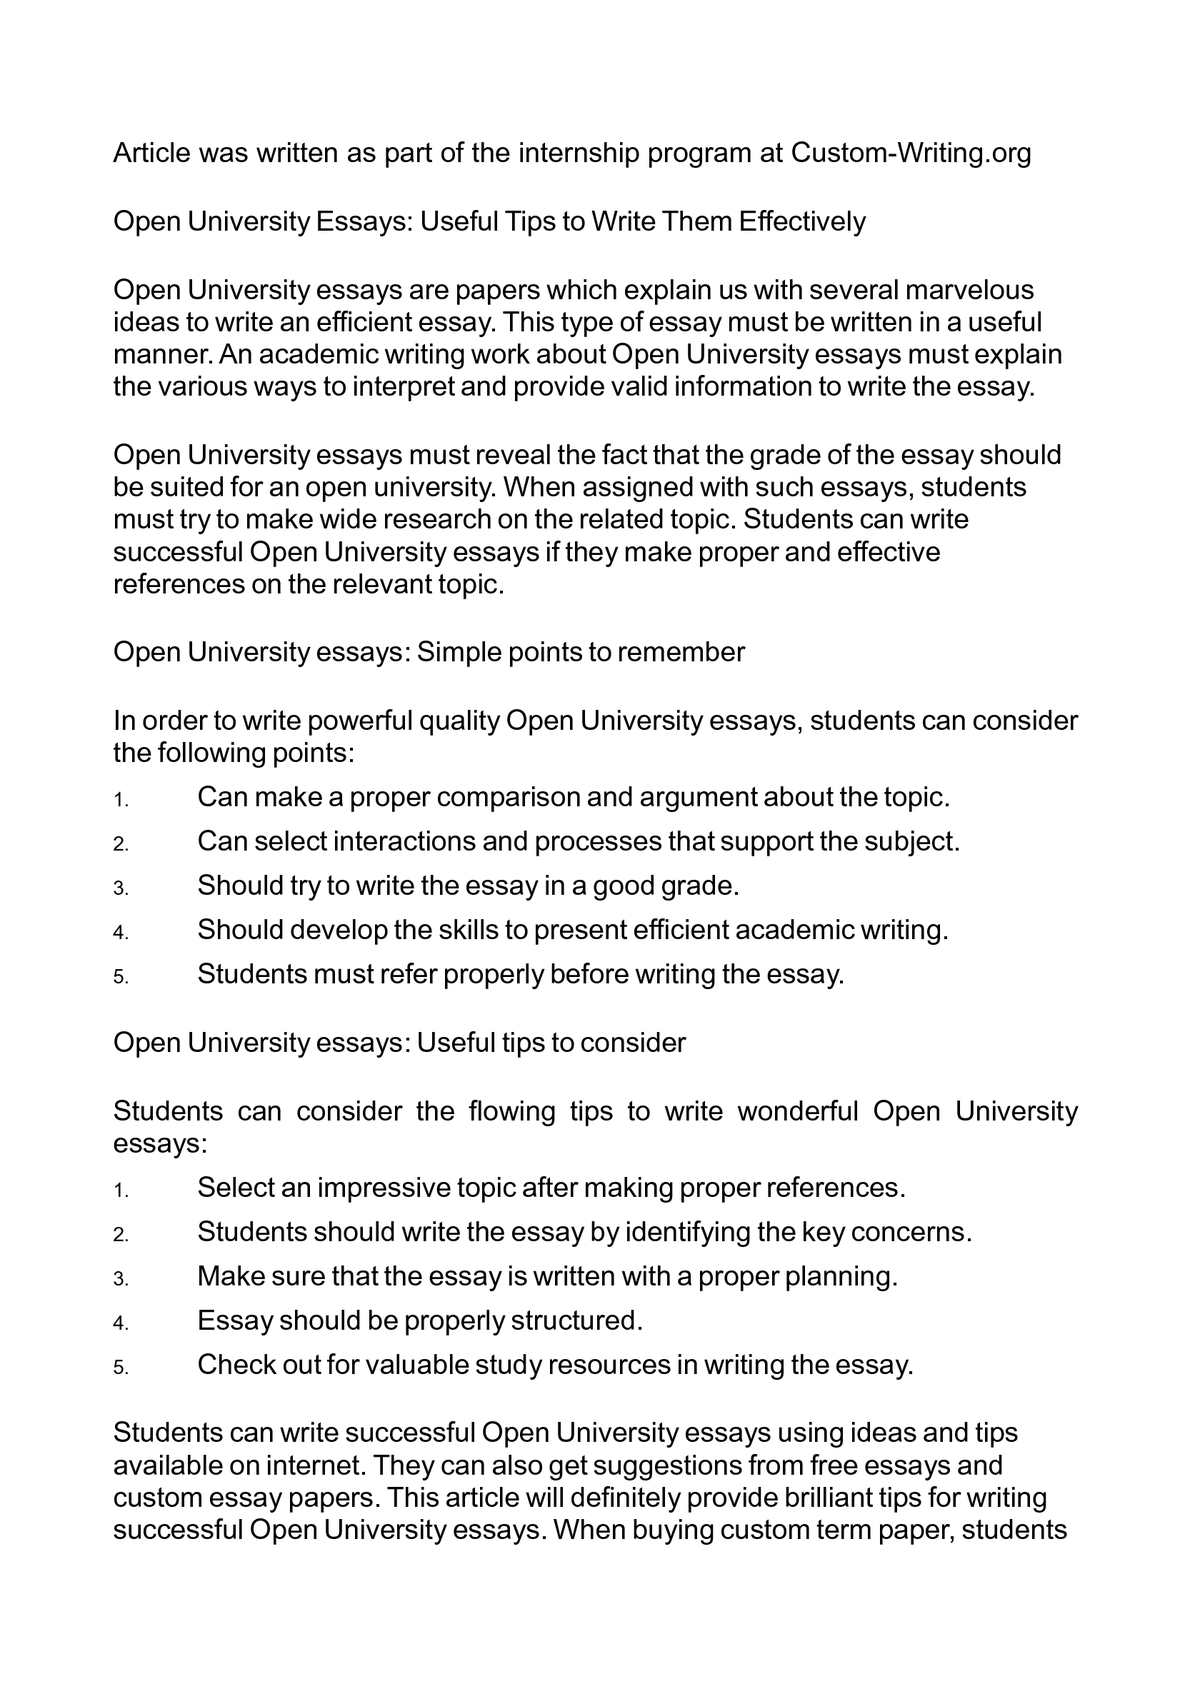 Healthy Living Essay  Essay Of Newspaper also University English Essay Calamo  Open University Essays Useful Tips To Write Them Effectively Reflective Essay On English Class